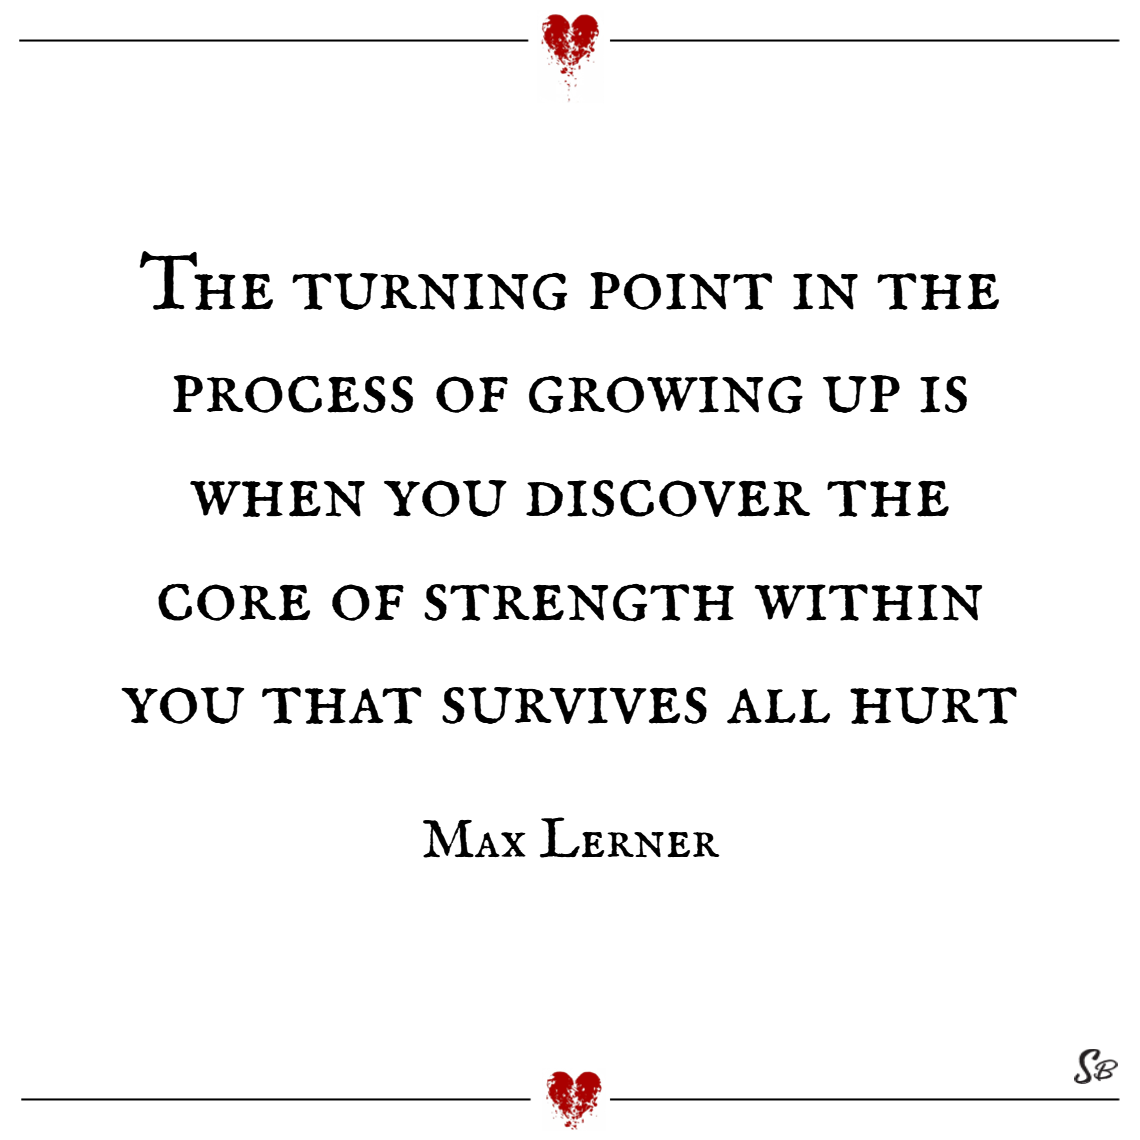 The turning point in the process of growing up is when you discover the core of strength within you that survives all hurt. – max lerner